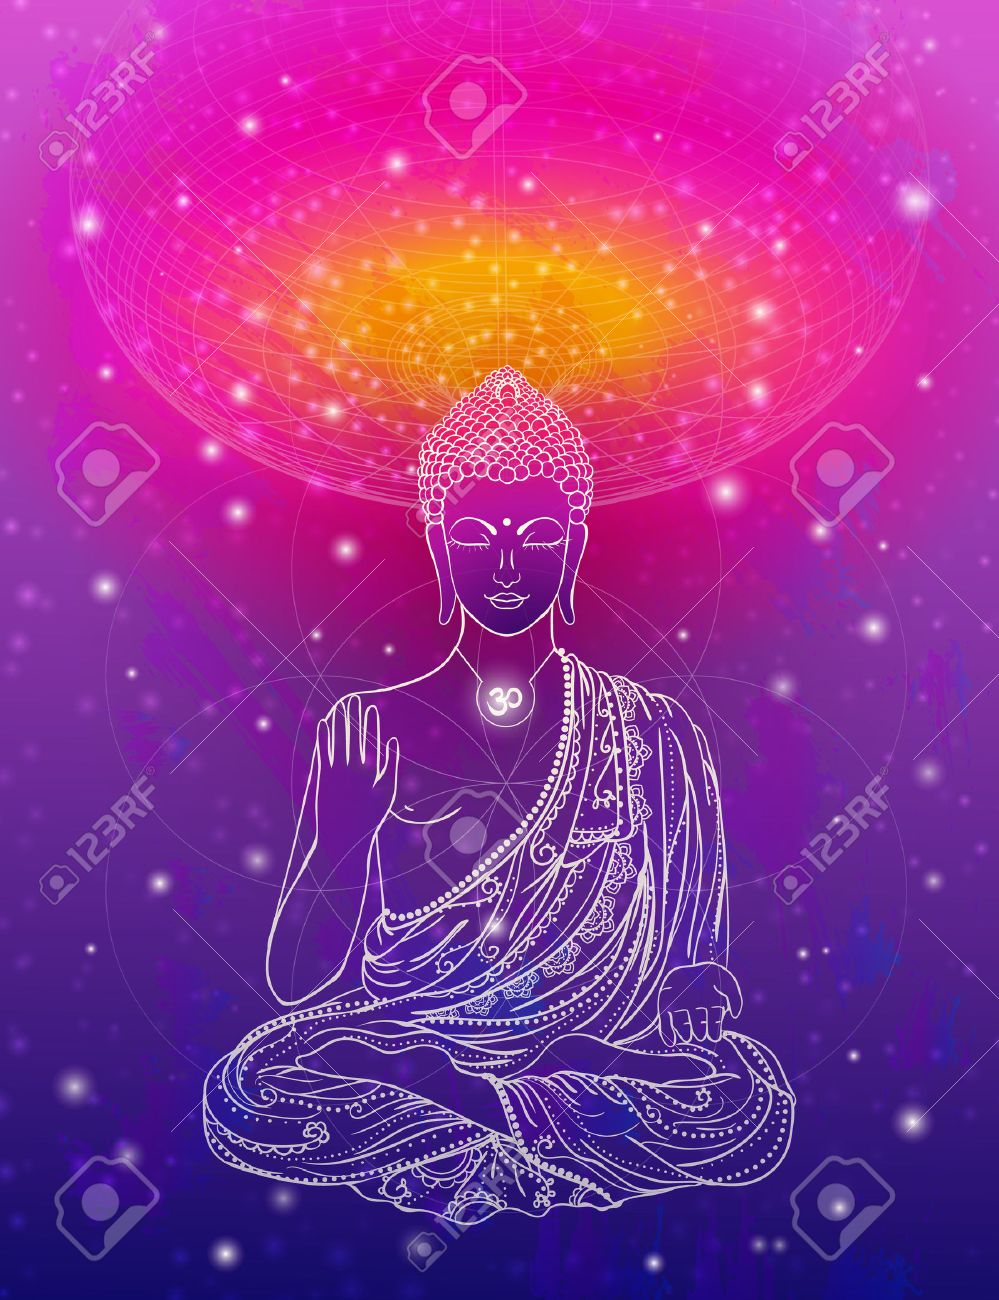 Statue of Buddha in the lotus position, meditation. Geometric element hand drawn. Psychedelic Poster in the style of 60's, 70's. Sacred Geometry. Promoted peace and love. - 50213020